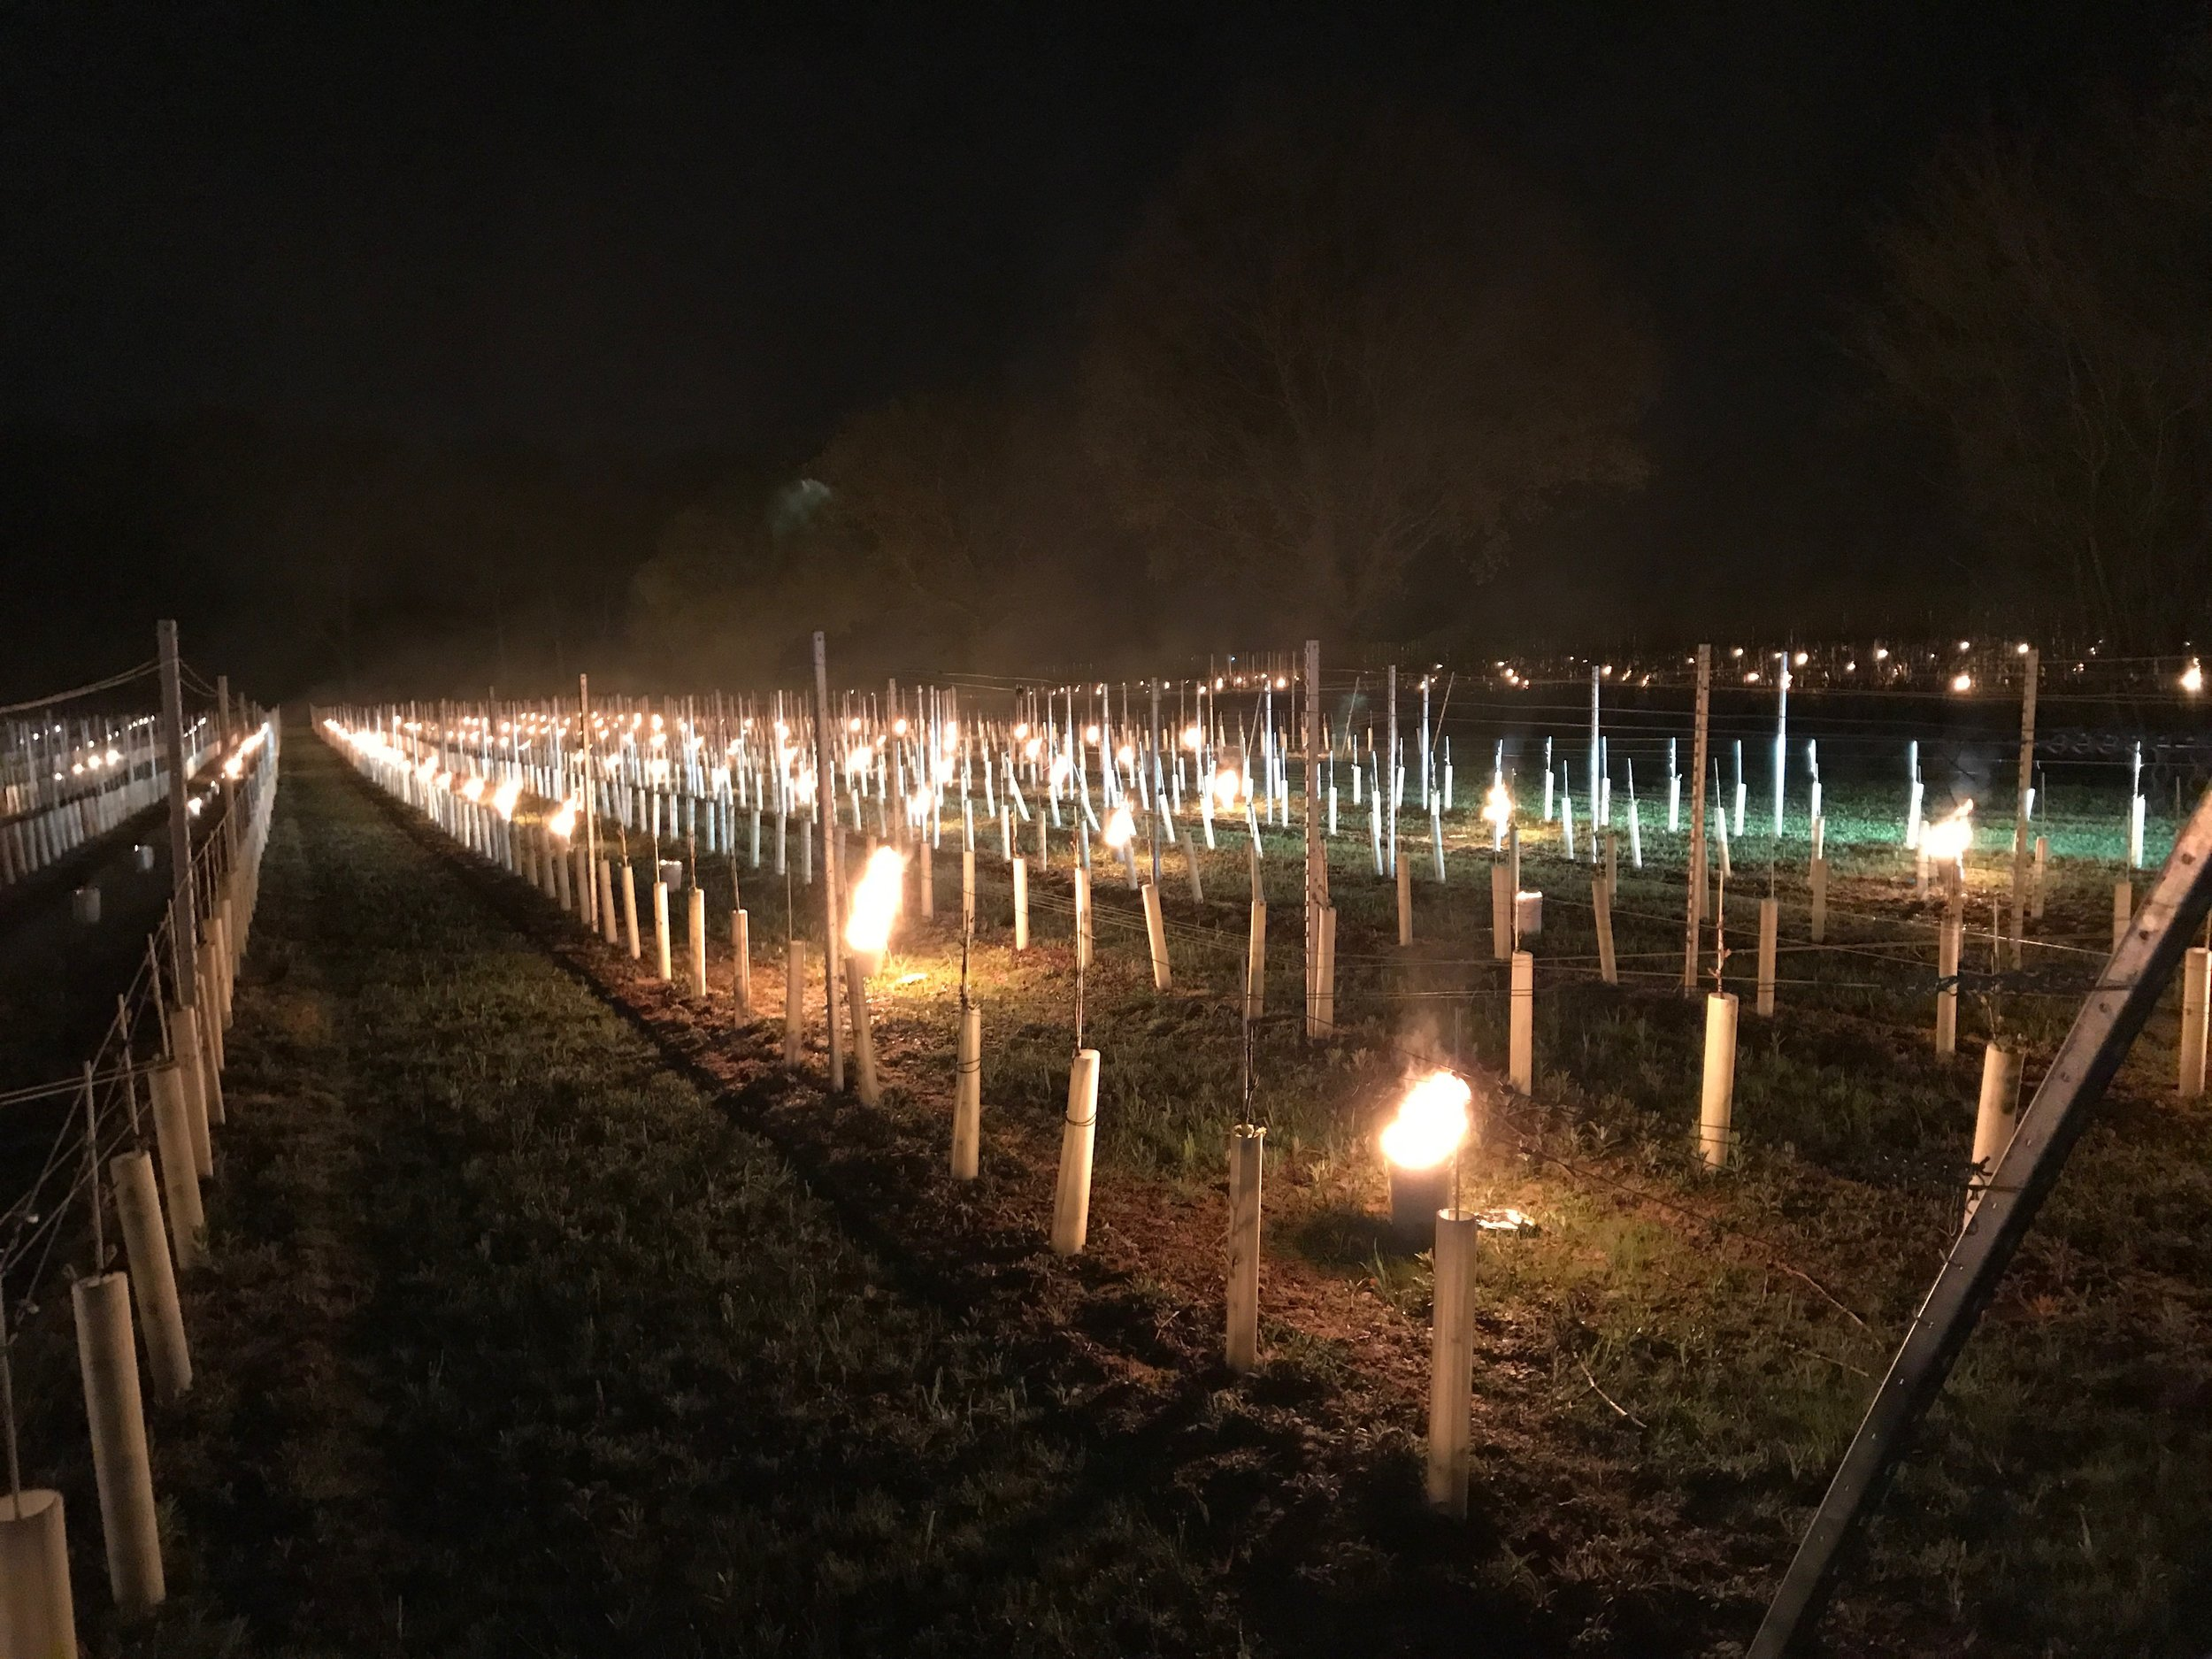 When temperatures threatened to drop sub-zero, we were out in full force lighting bougies to mitigate any frost damage to the vines.